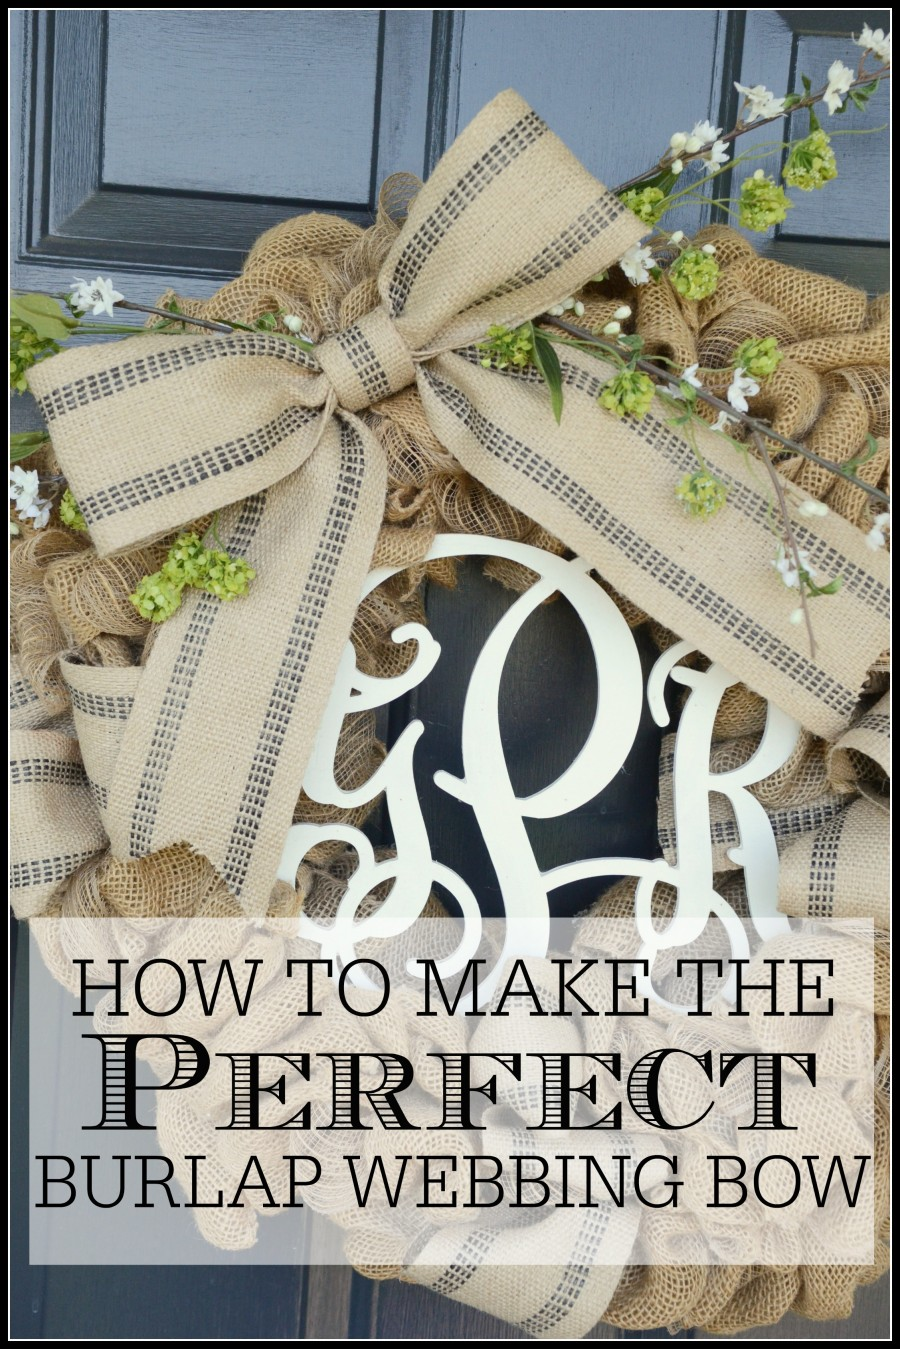 HOW TO MAKE THE PERFECT BURLAP BOW